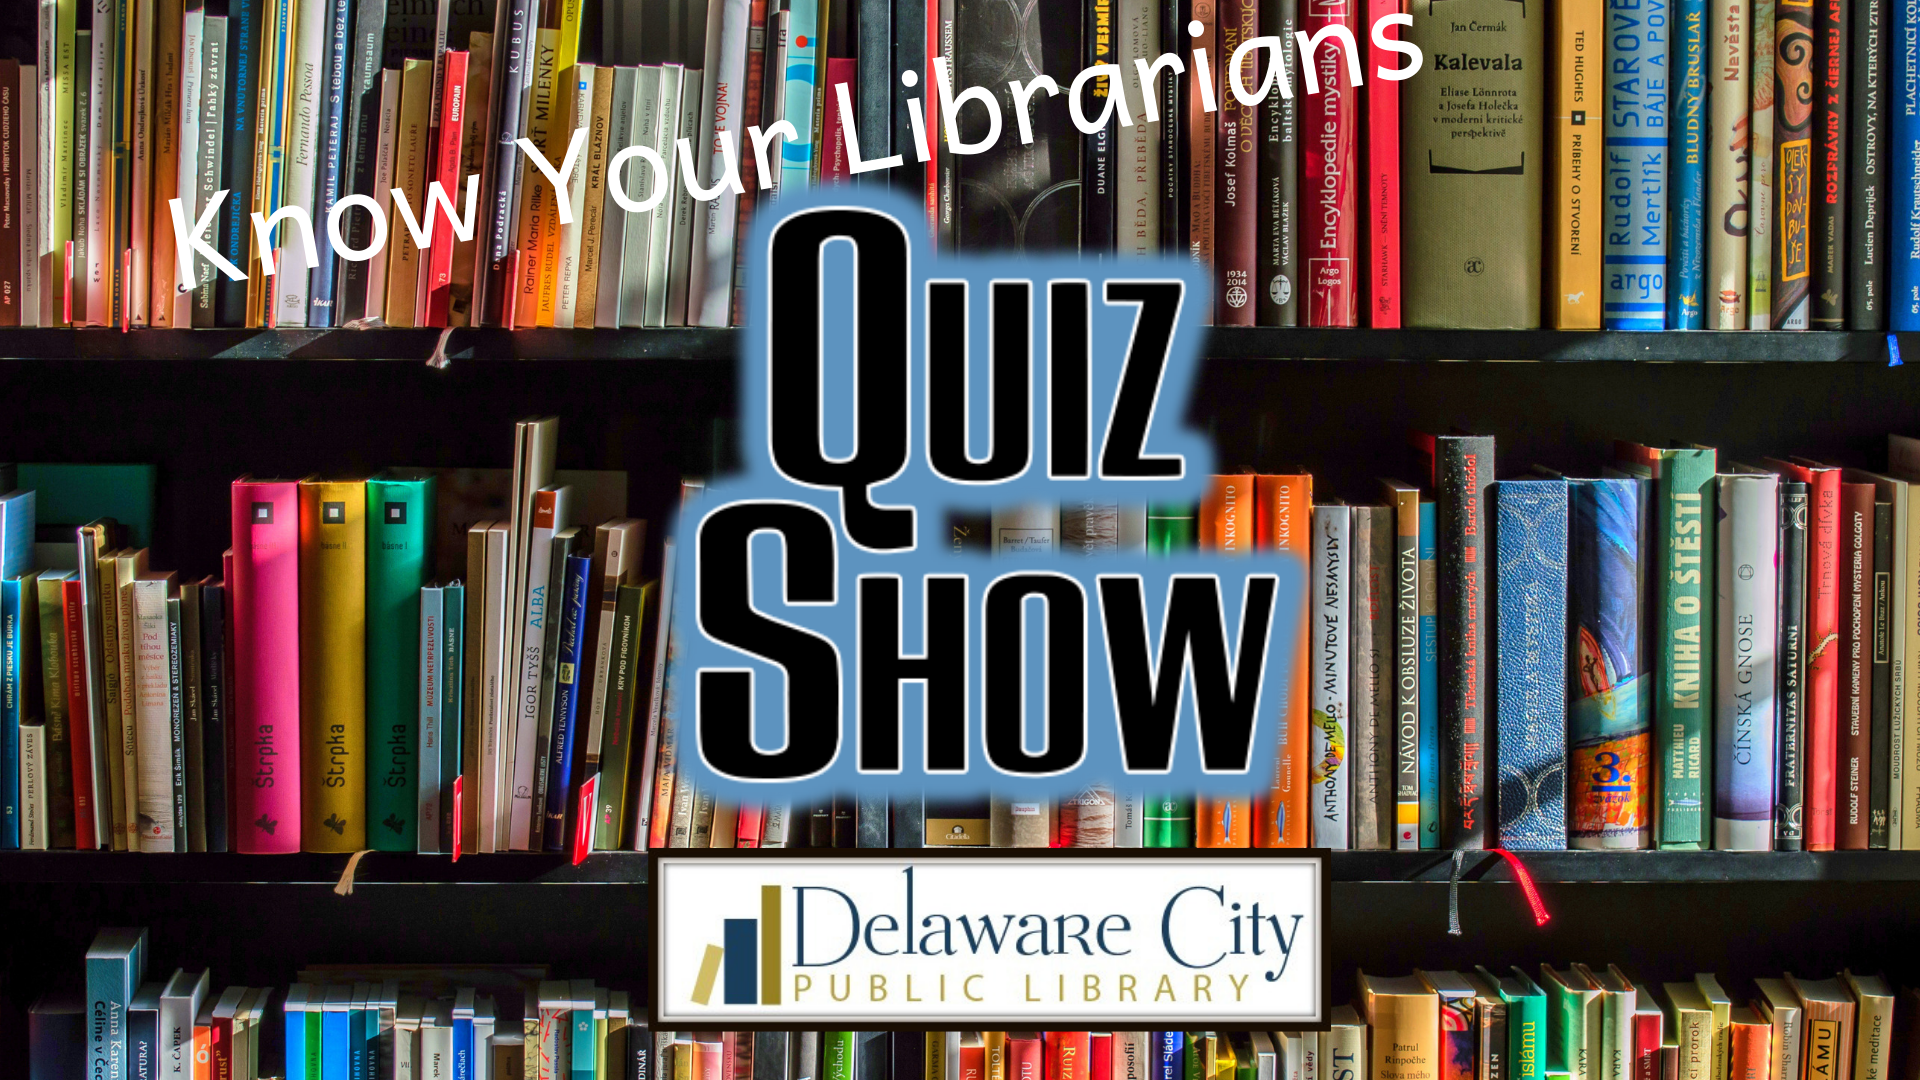 Know Your Librarians Quiz Show